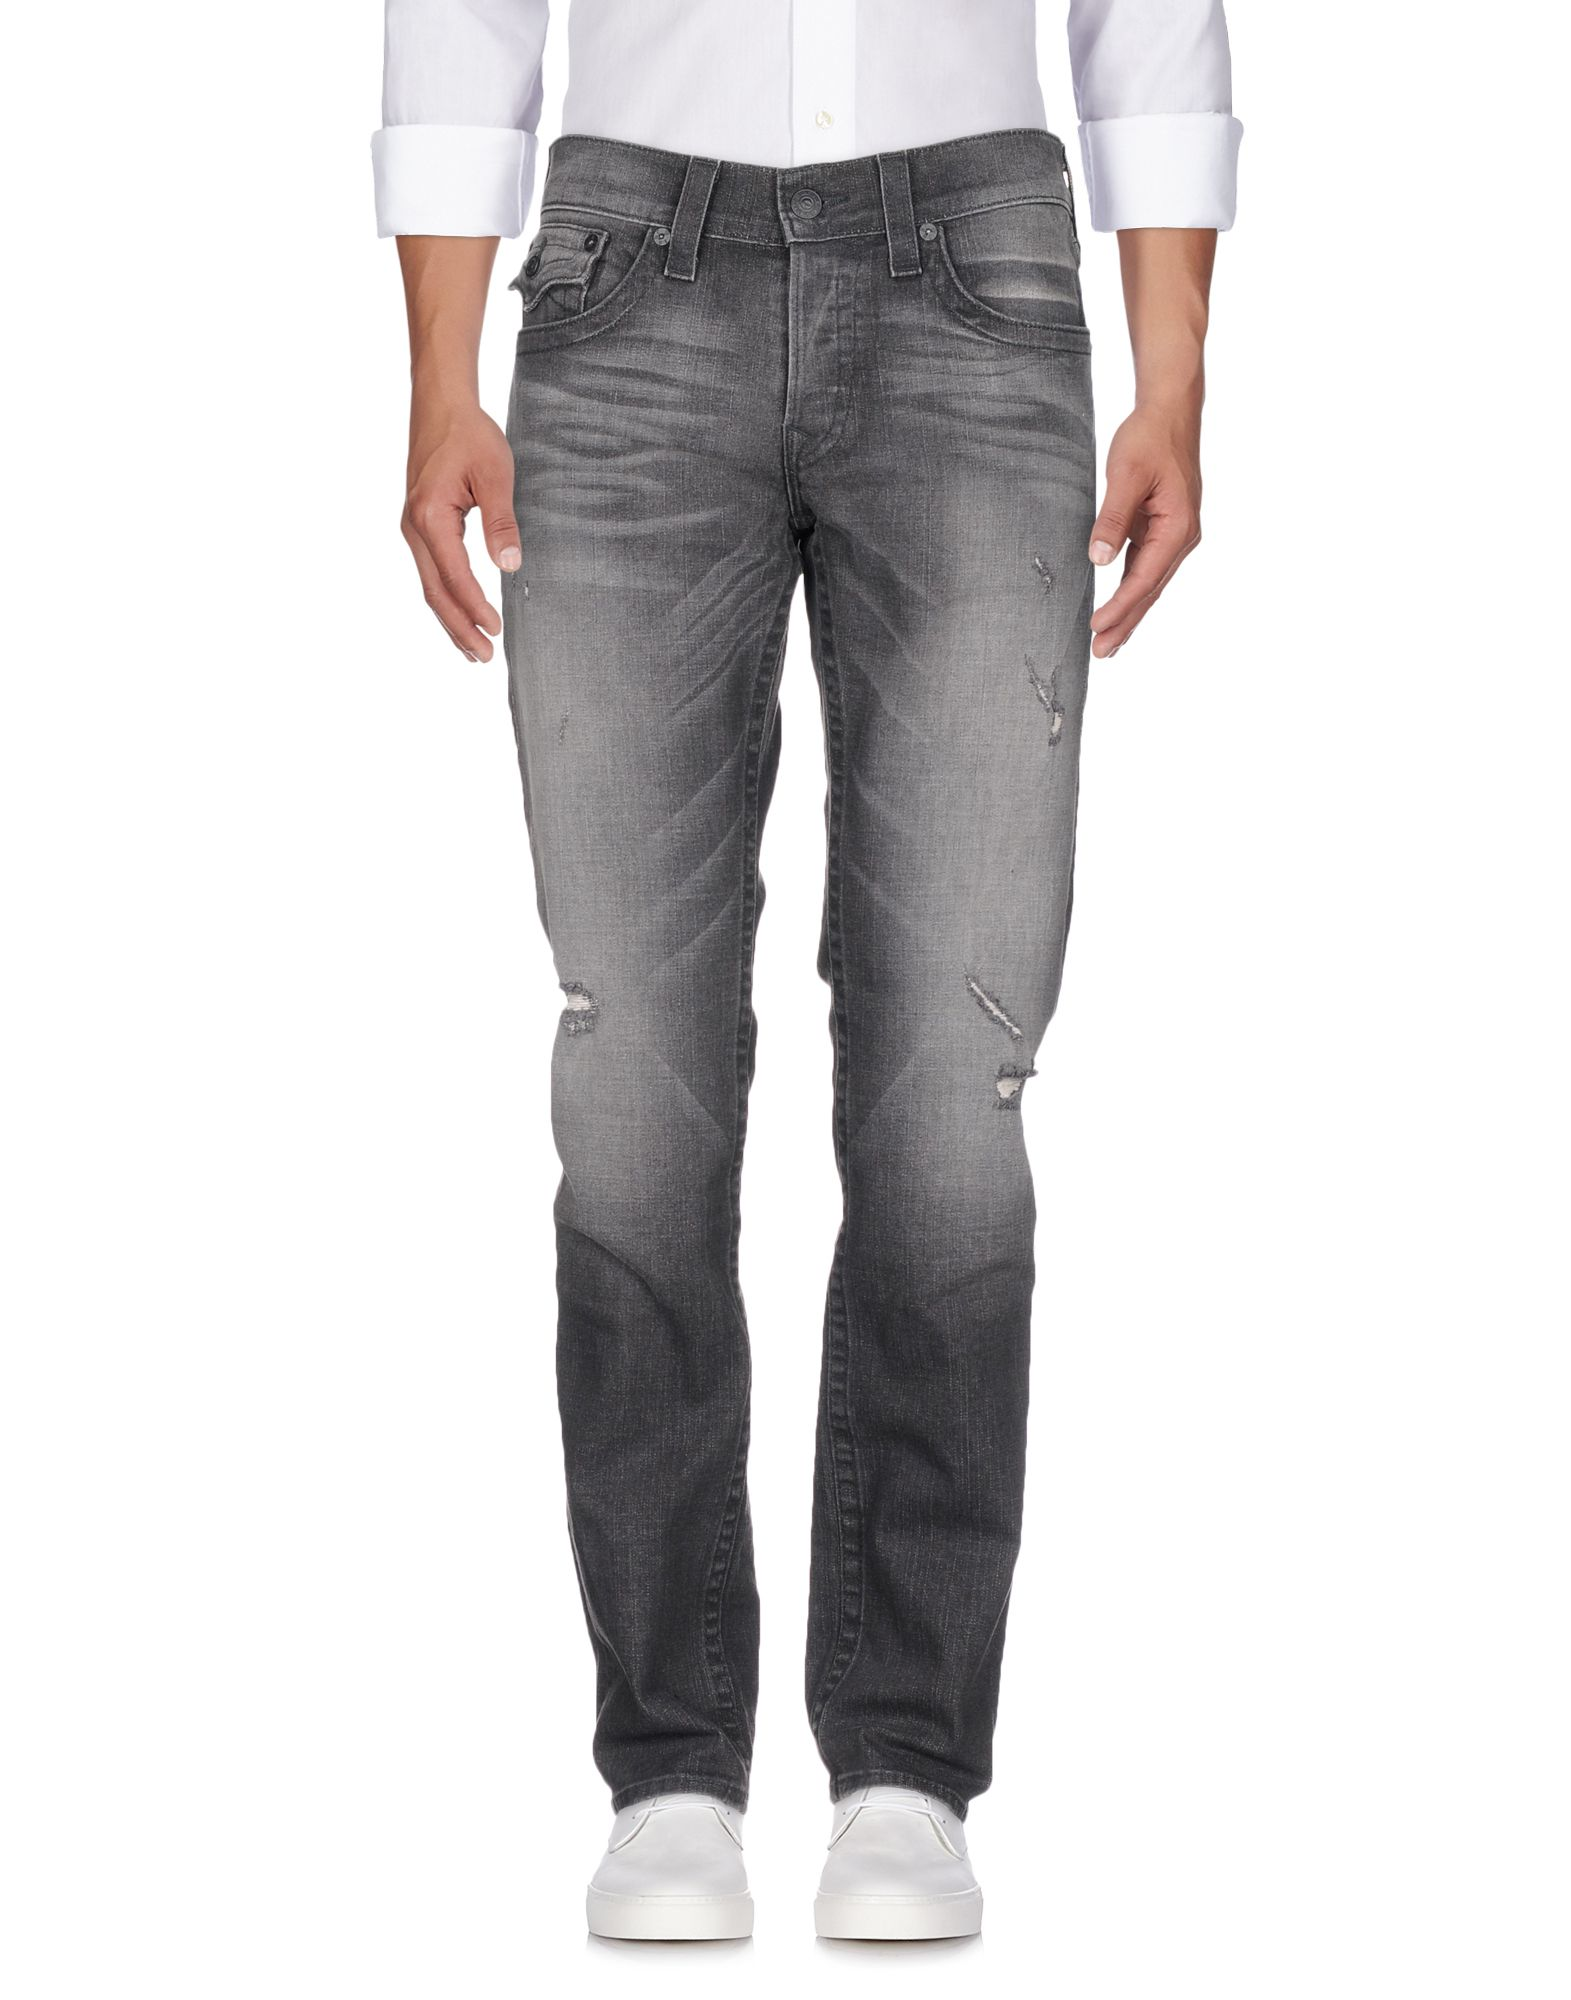 Pantaloni Jeans True Religion Donna - Acquista online su